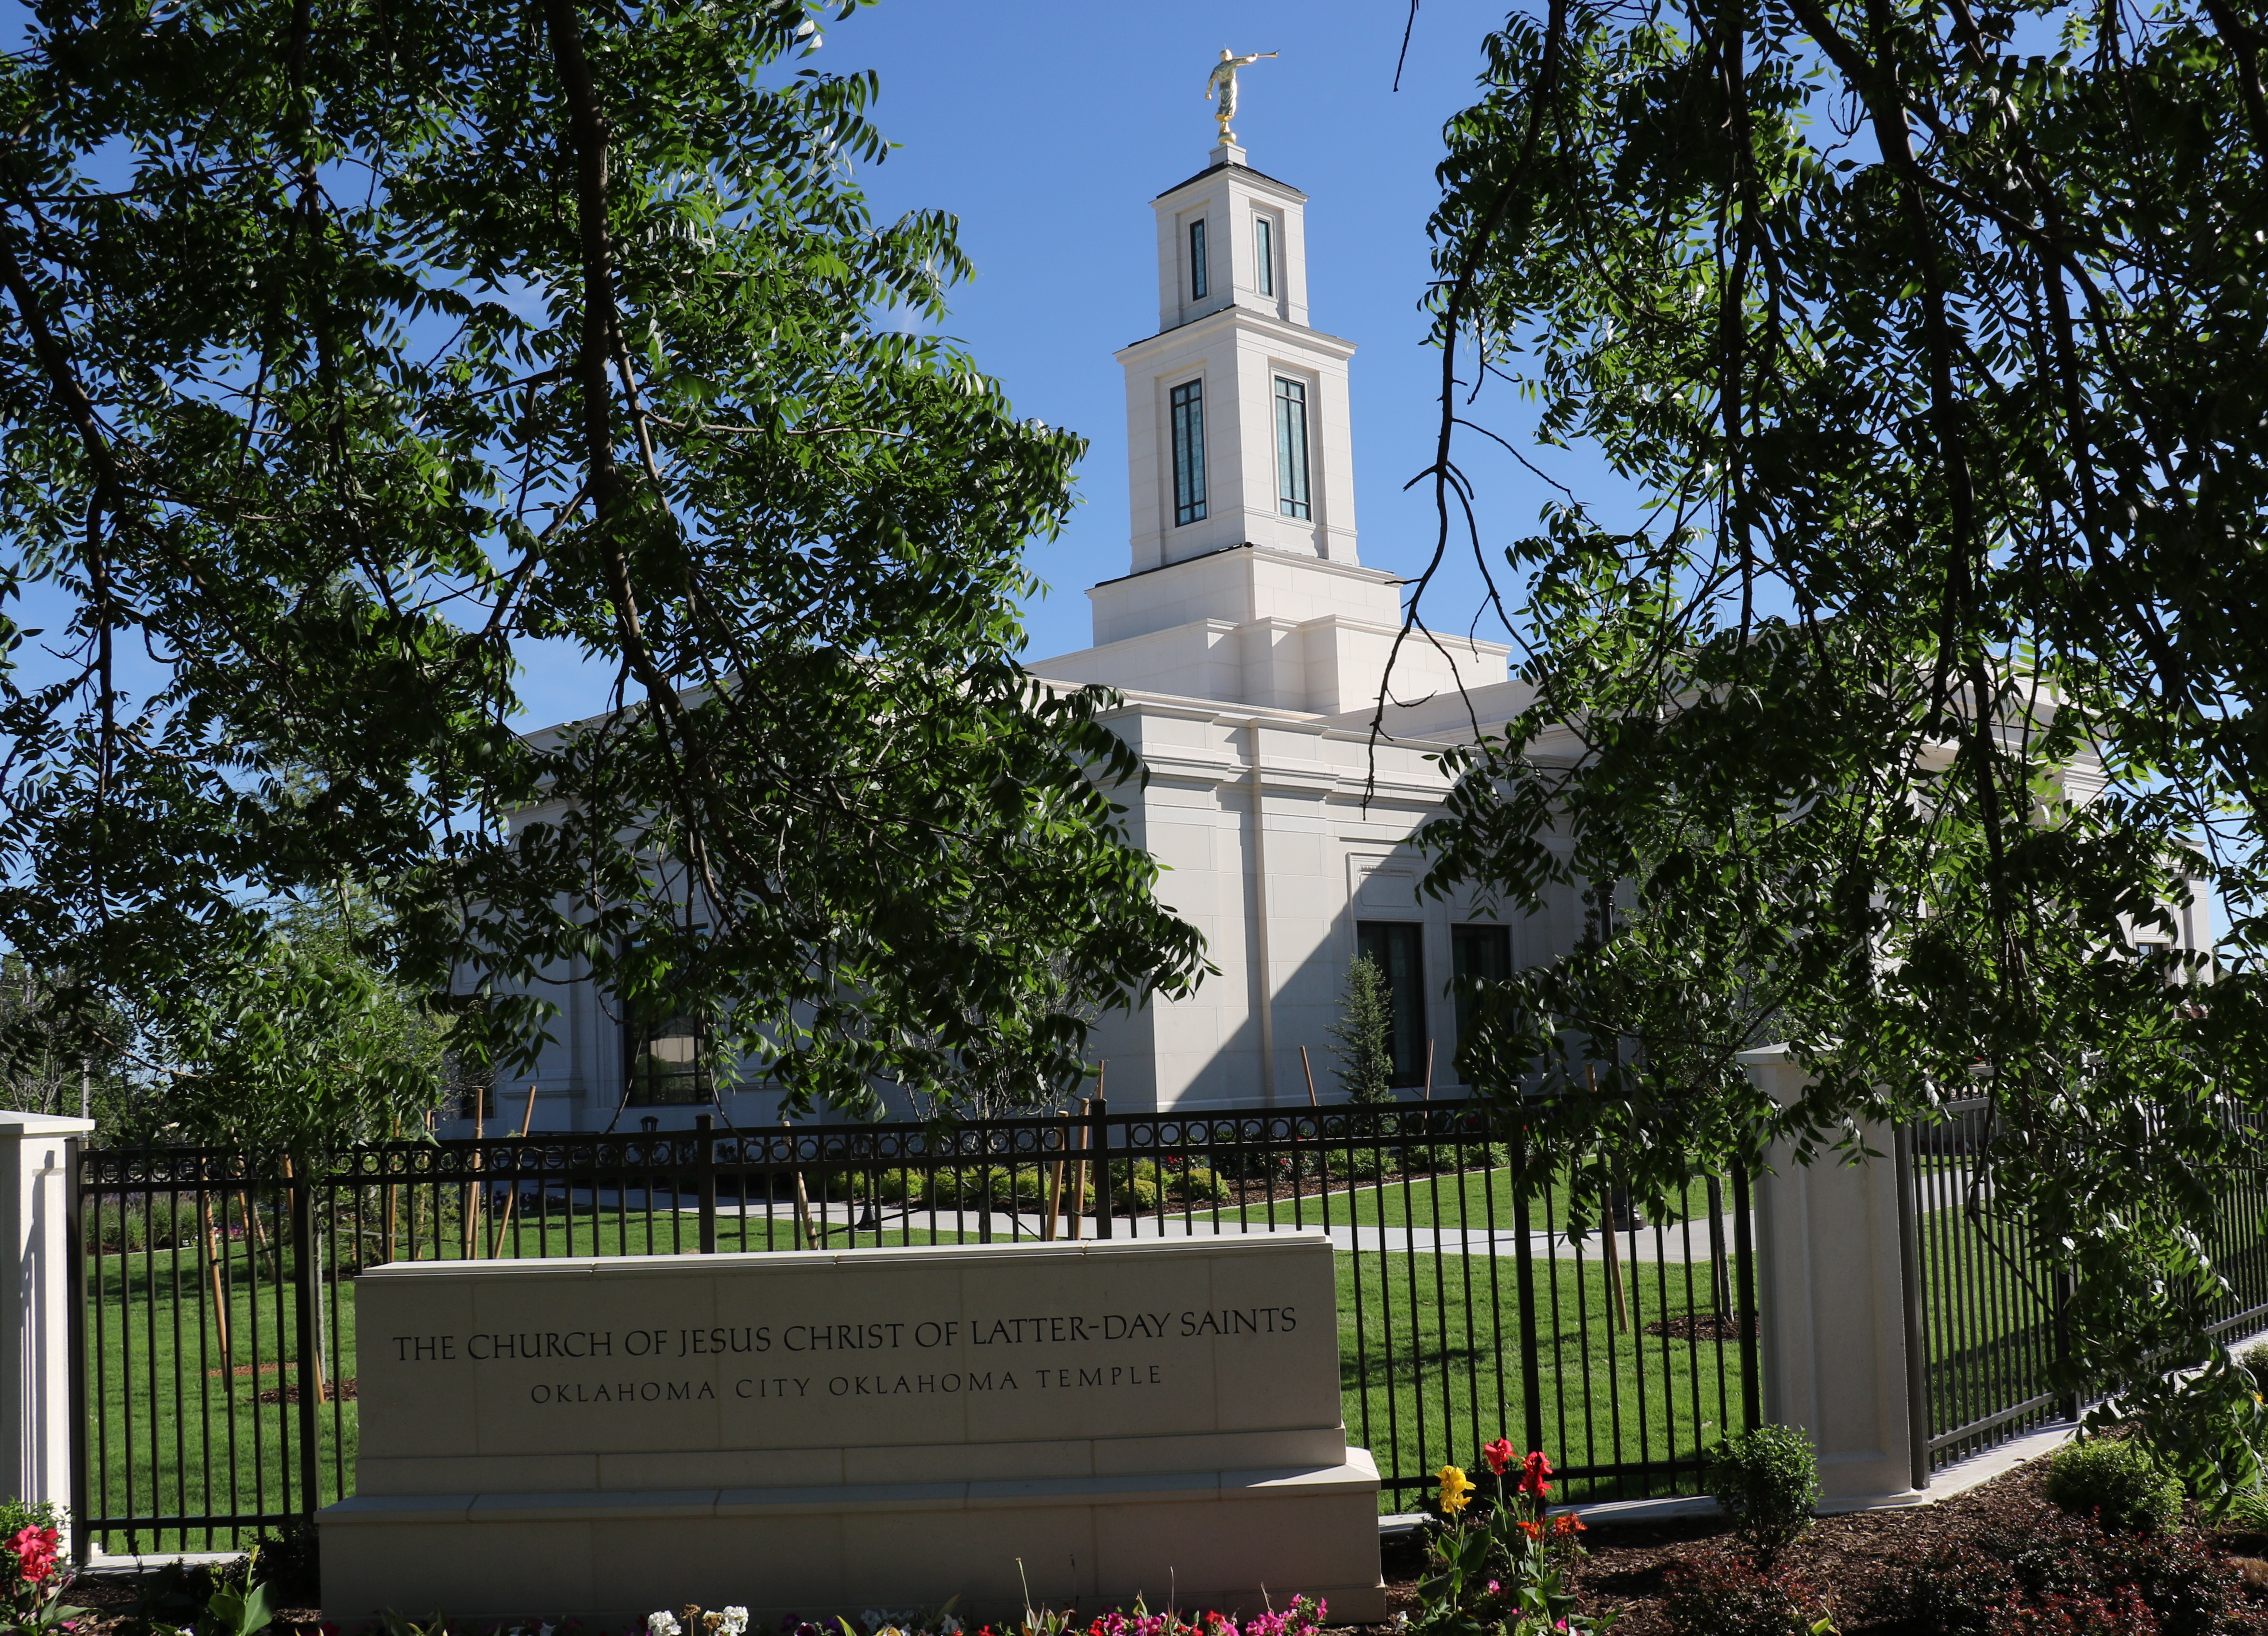 Originally dedicated in 2000, the Oklahoma City Oklahoma Temple was rededicated on May 19, 2019, by President Henry B. Eyring.